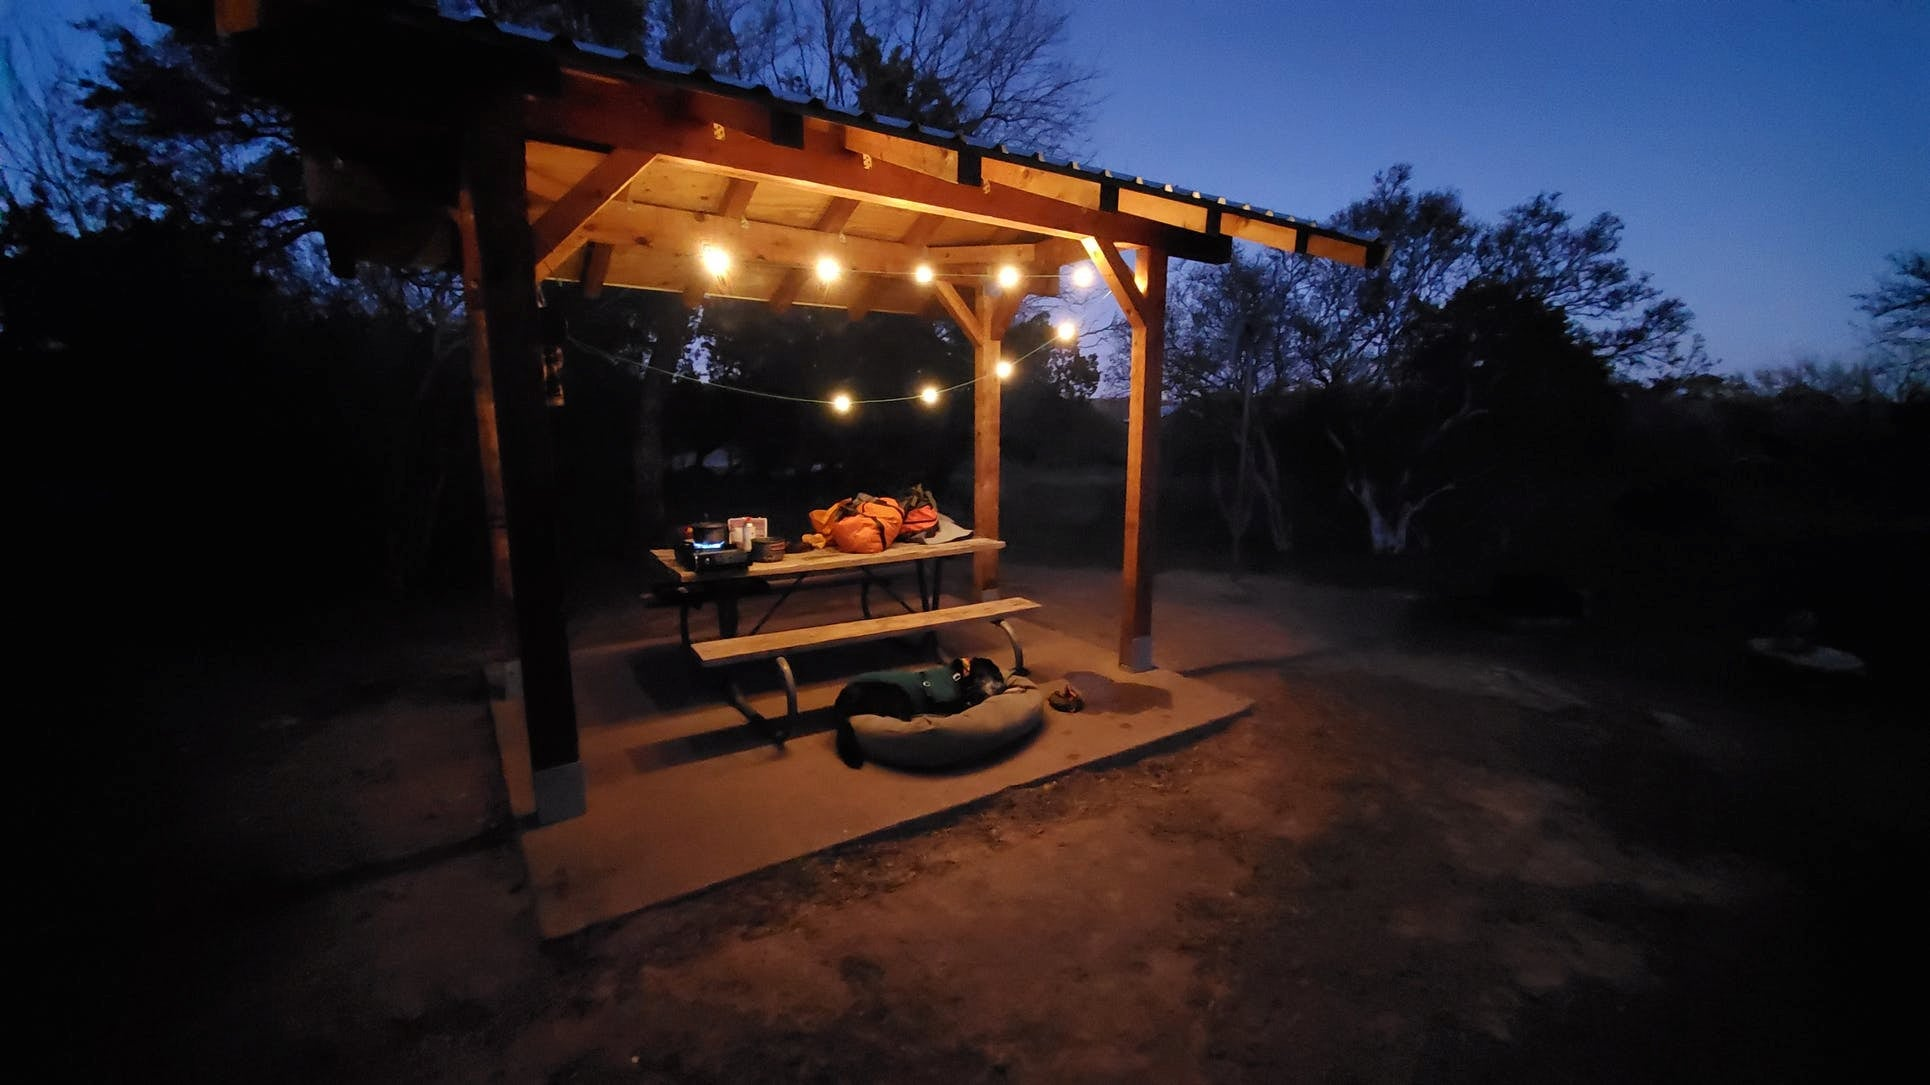 String lights in small awning over picnic table at campsite.